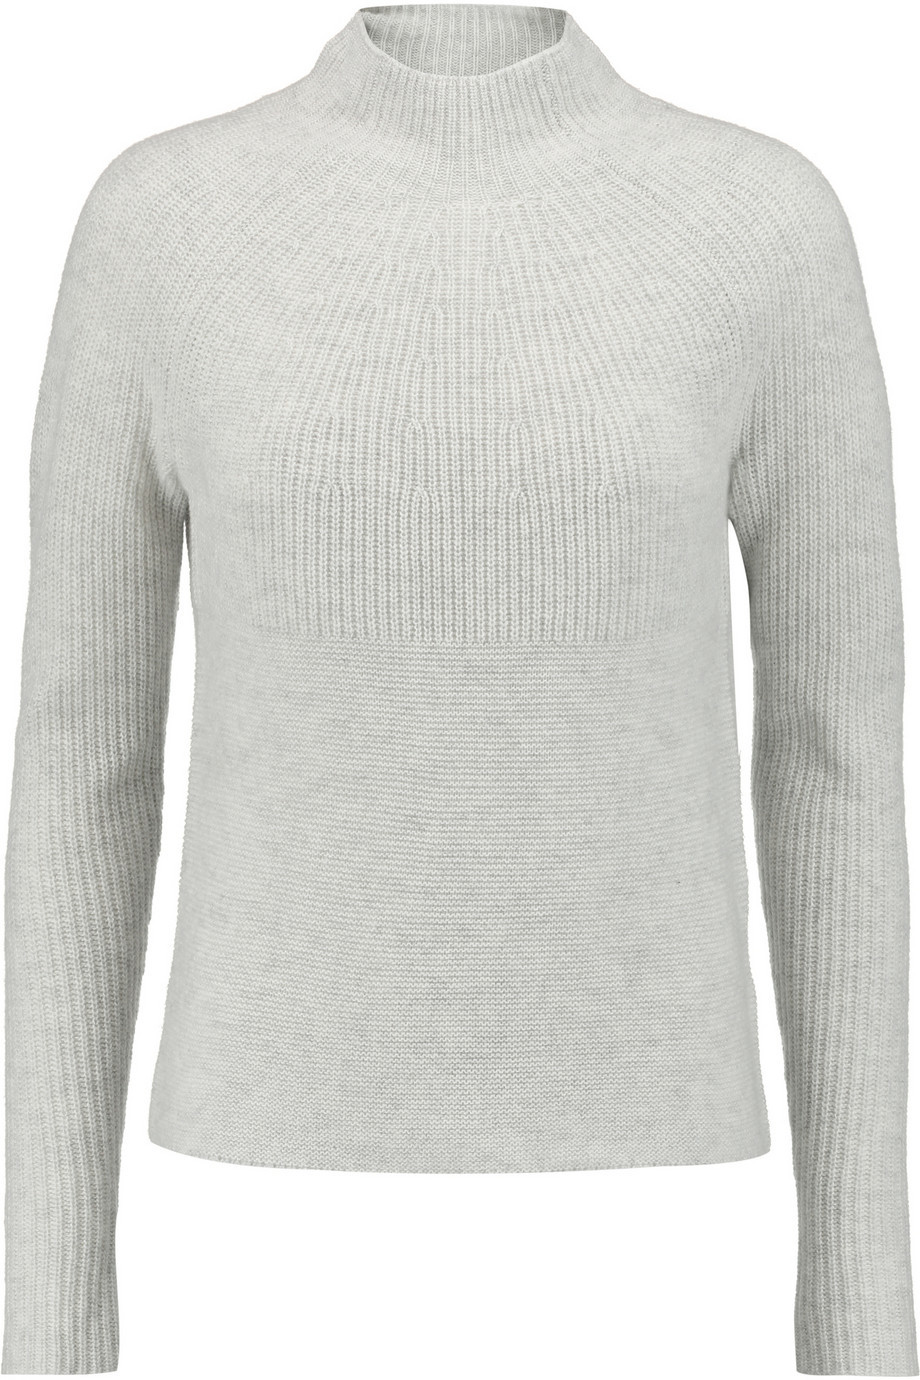 Ribbed Cashmere Sweater Stone - pattern: plain; neckline: high neck; style: standard; predominant colour: light grey; occasions: casual; length: standard; fit: slim fit; fibres: cashmere - 100%; sleeve length: long sleeve; sleeve style: standard; texture group: knits/crochet; pattern type: fabric; season: s/s 2016; wardrobe: investment